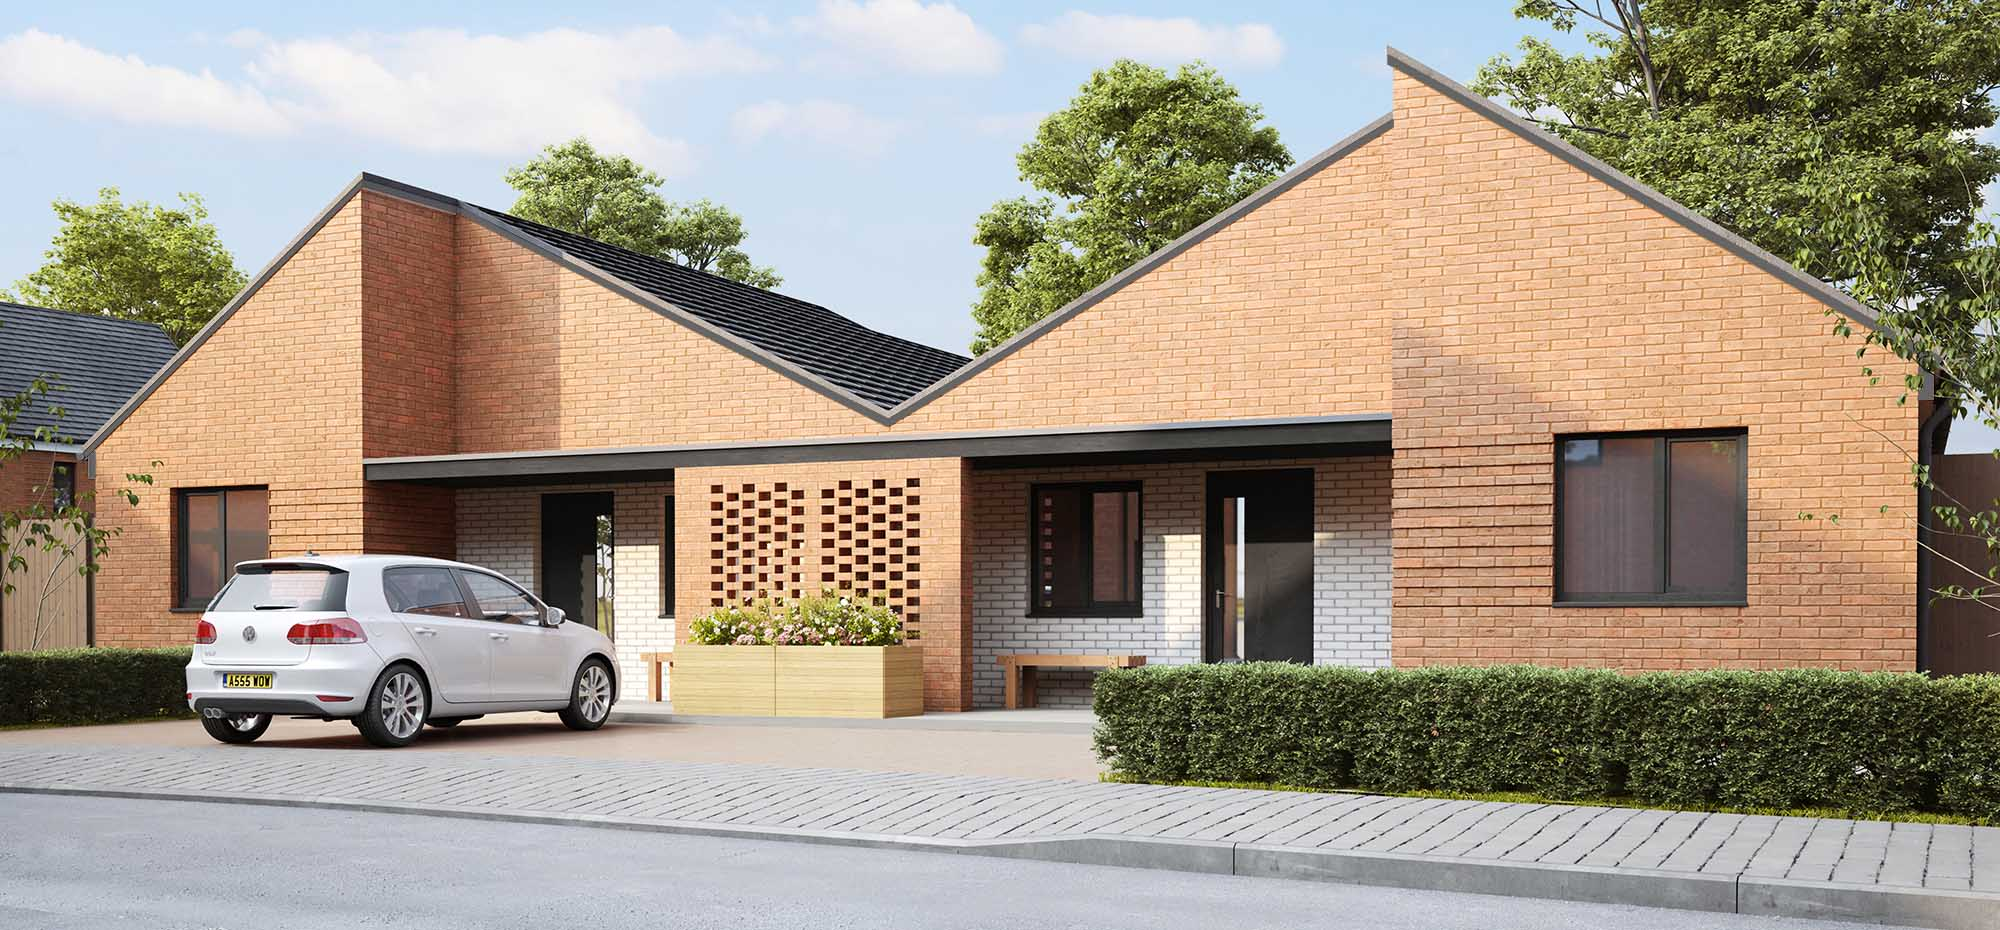 This image shows the external view of the Bluebell bungalow from Shape Homes York.